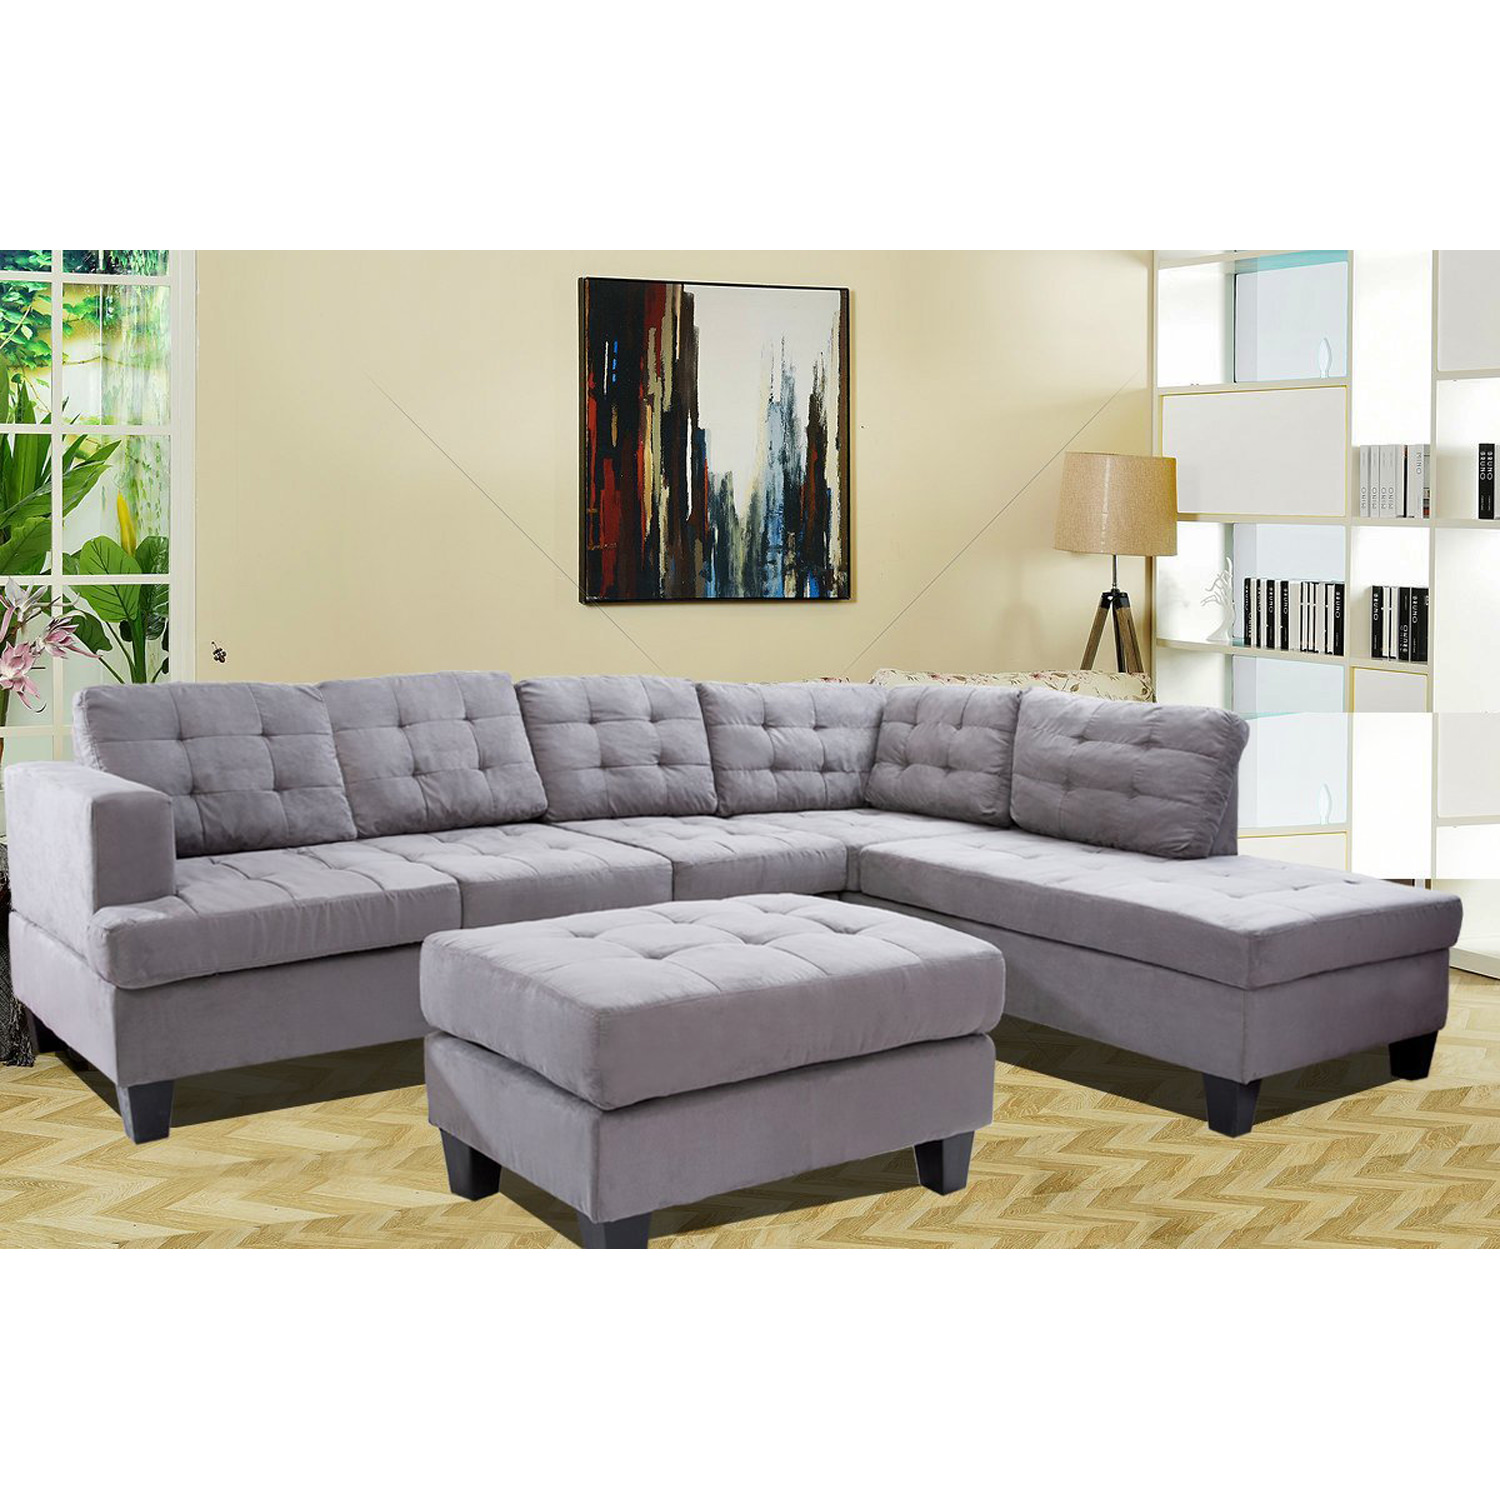 gray sofa with chaise lounge clearance toronto merax 3 piece sectional and ottoman grey walmart com